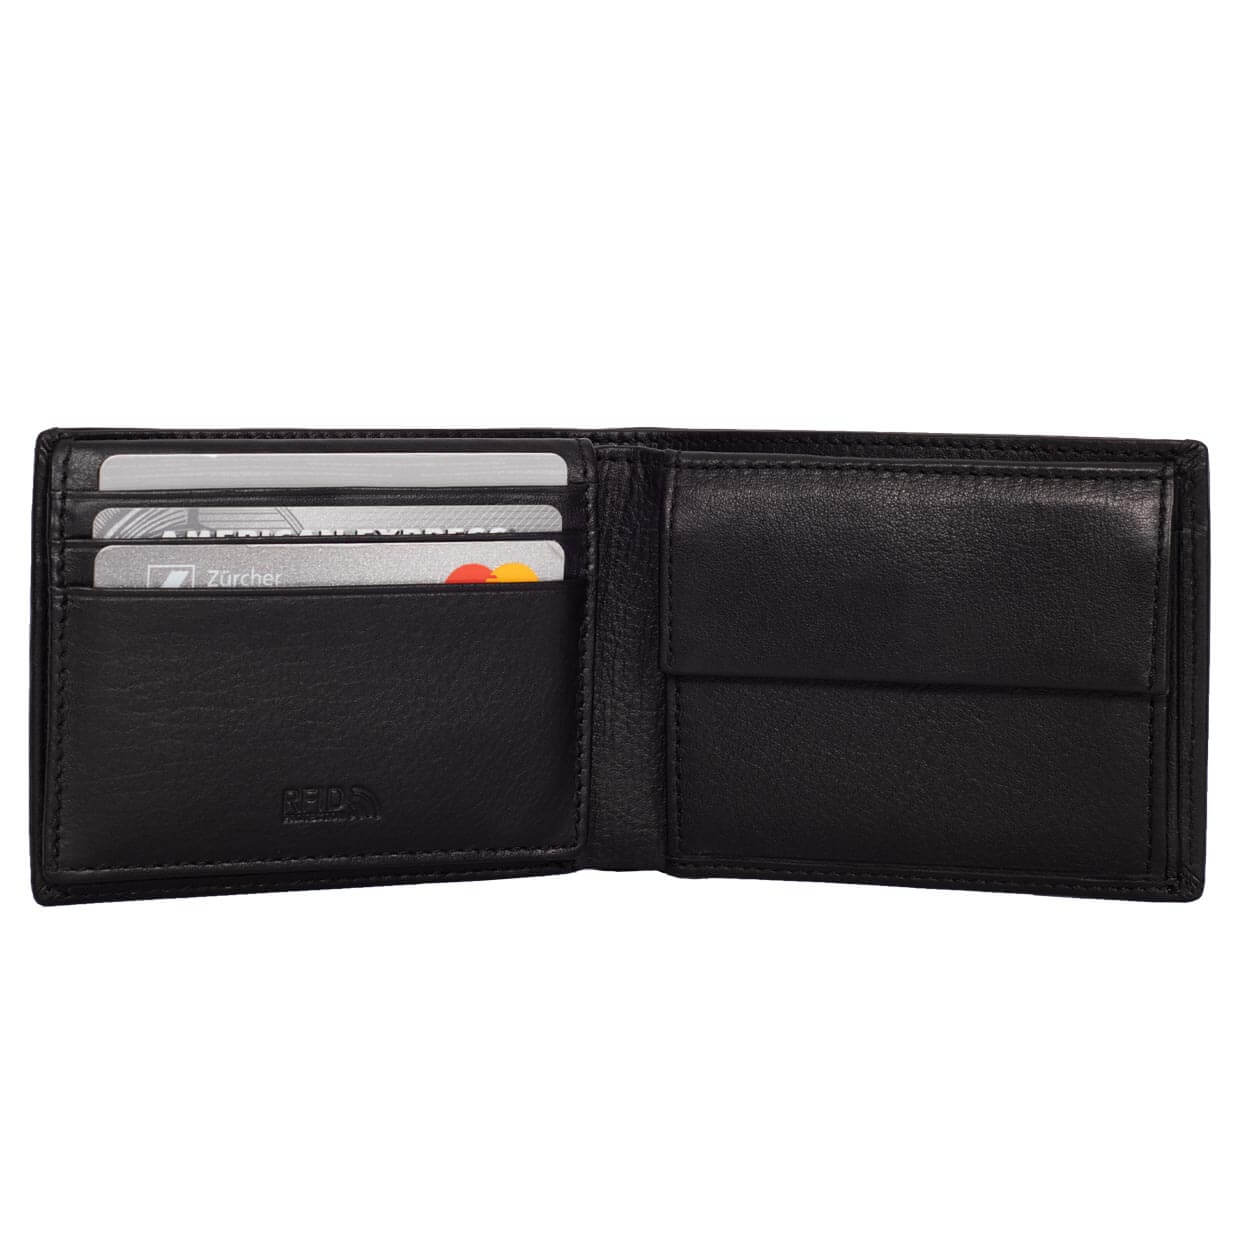 European Style Mens Leather Wallet with Coin Compartment Midnight Black - Front View